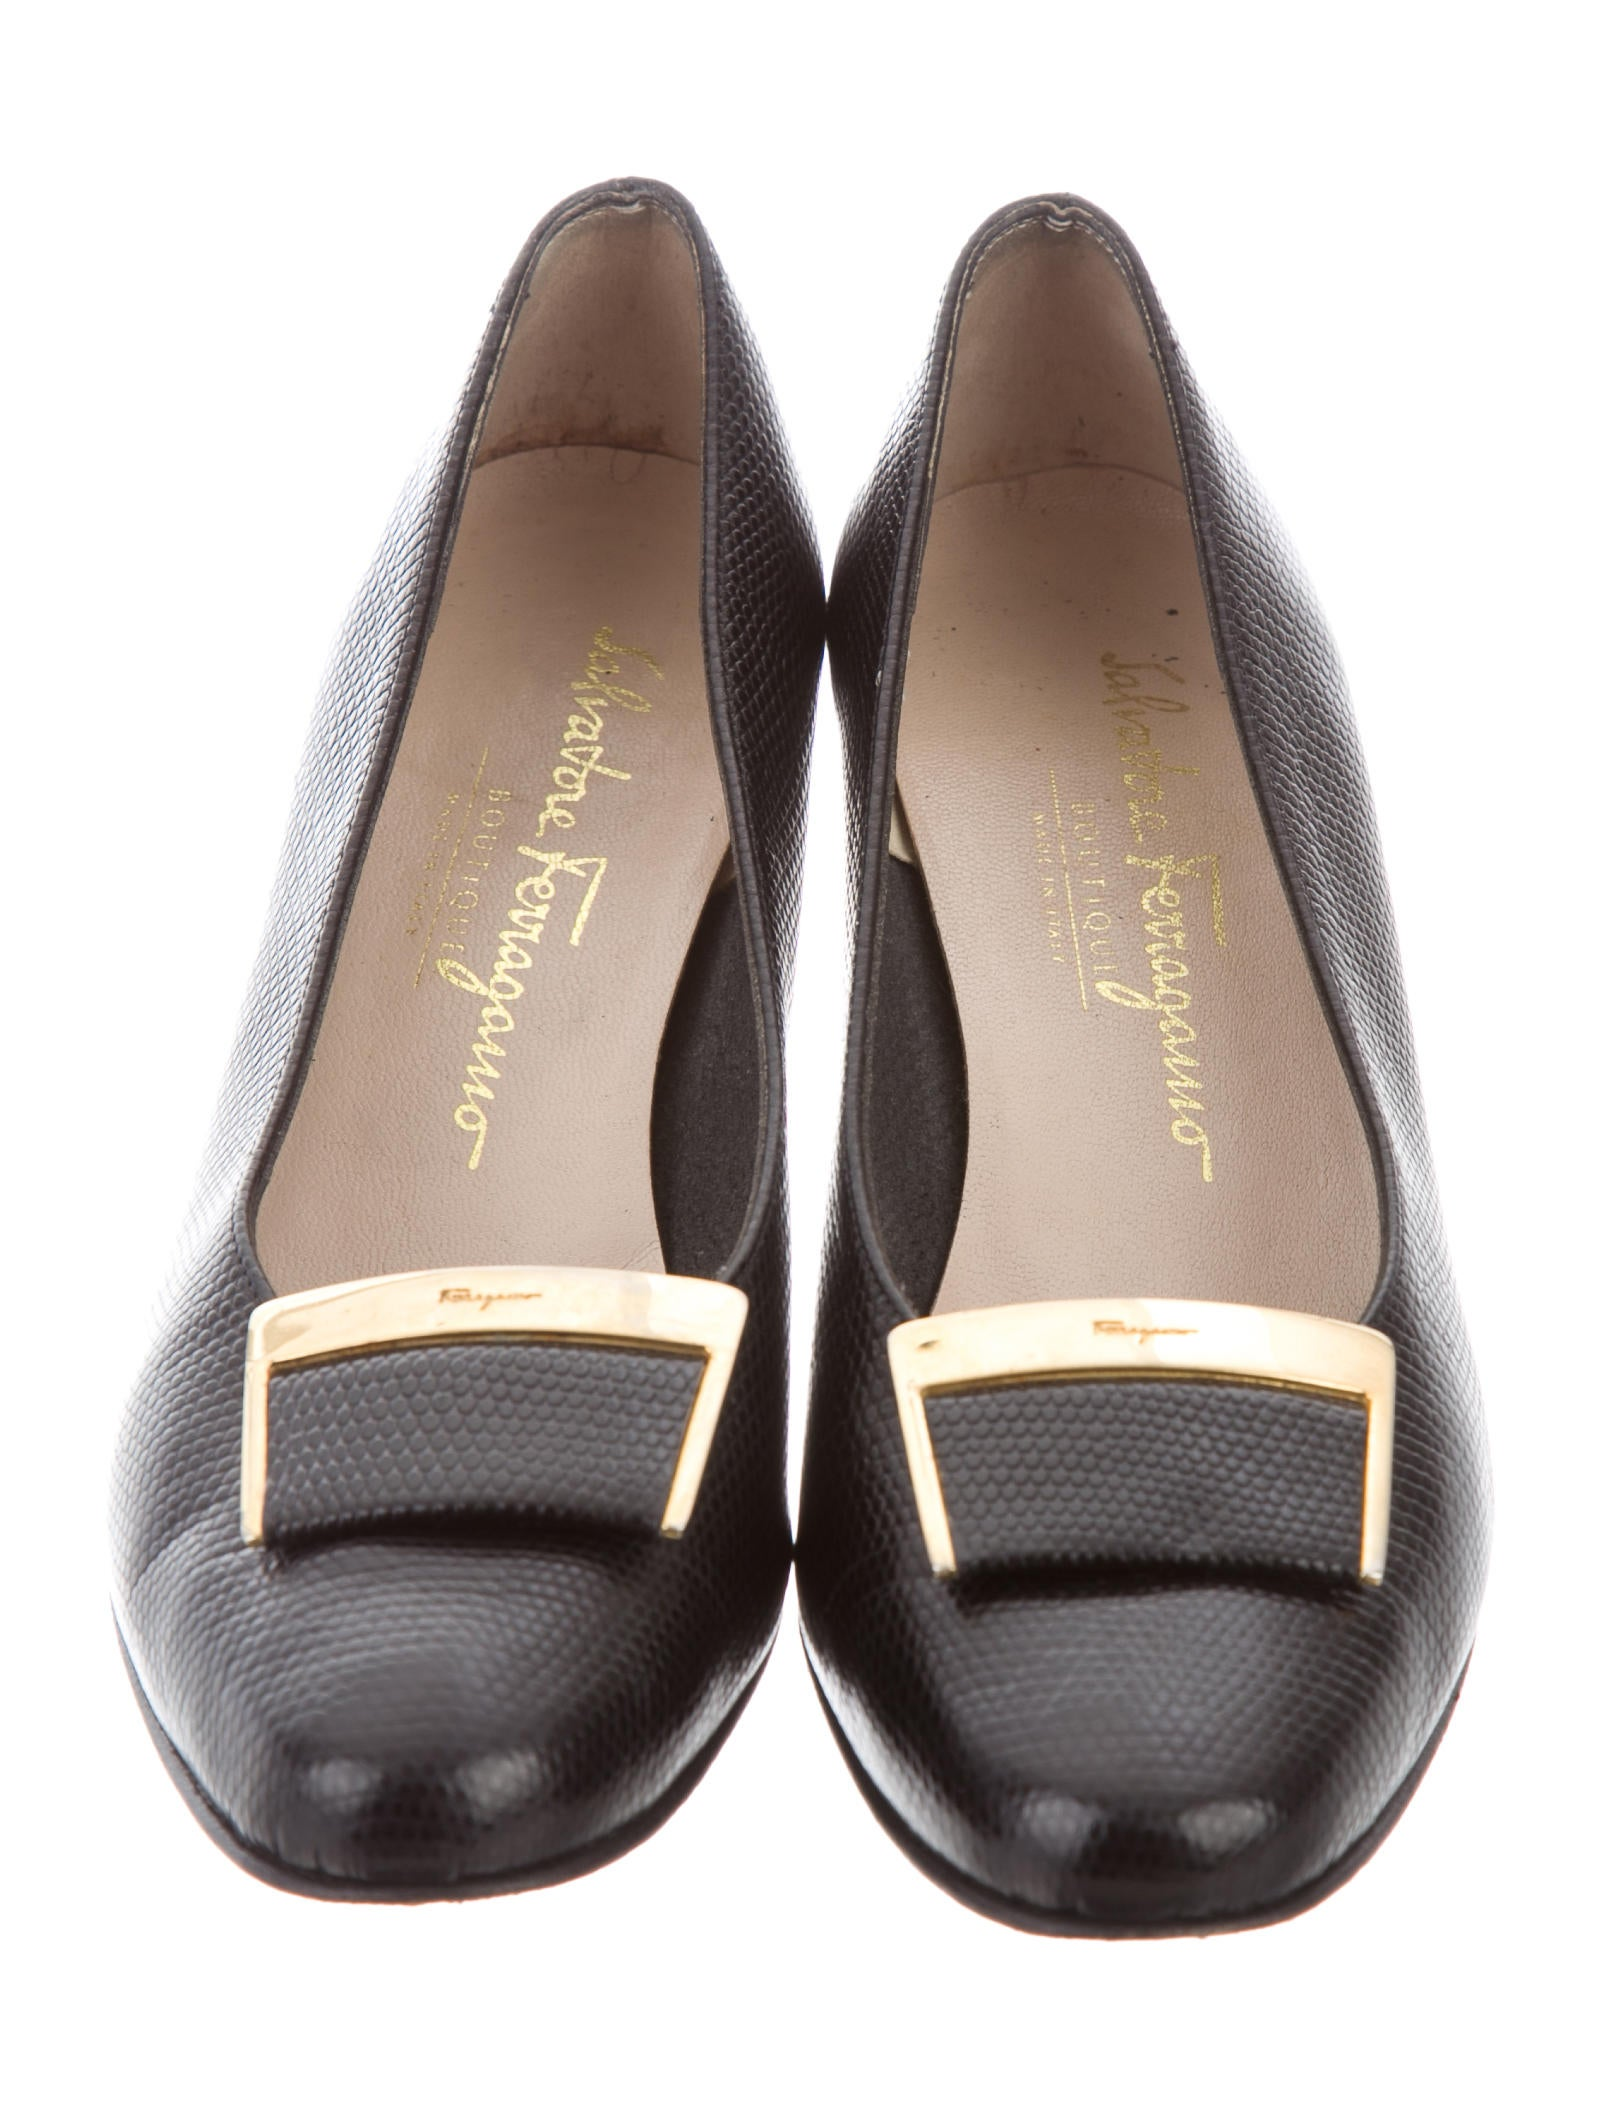 salvatore ferragamo embossed leather pumps shoes sal47484 the realreal. Black Bedroom Furniture Sets. Home Design Ideas